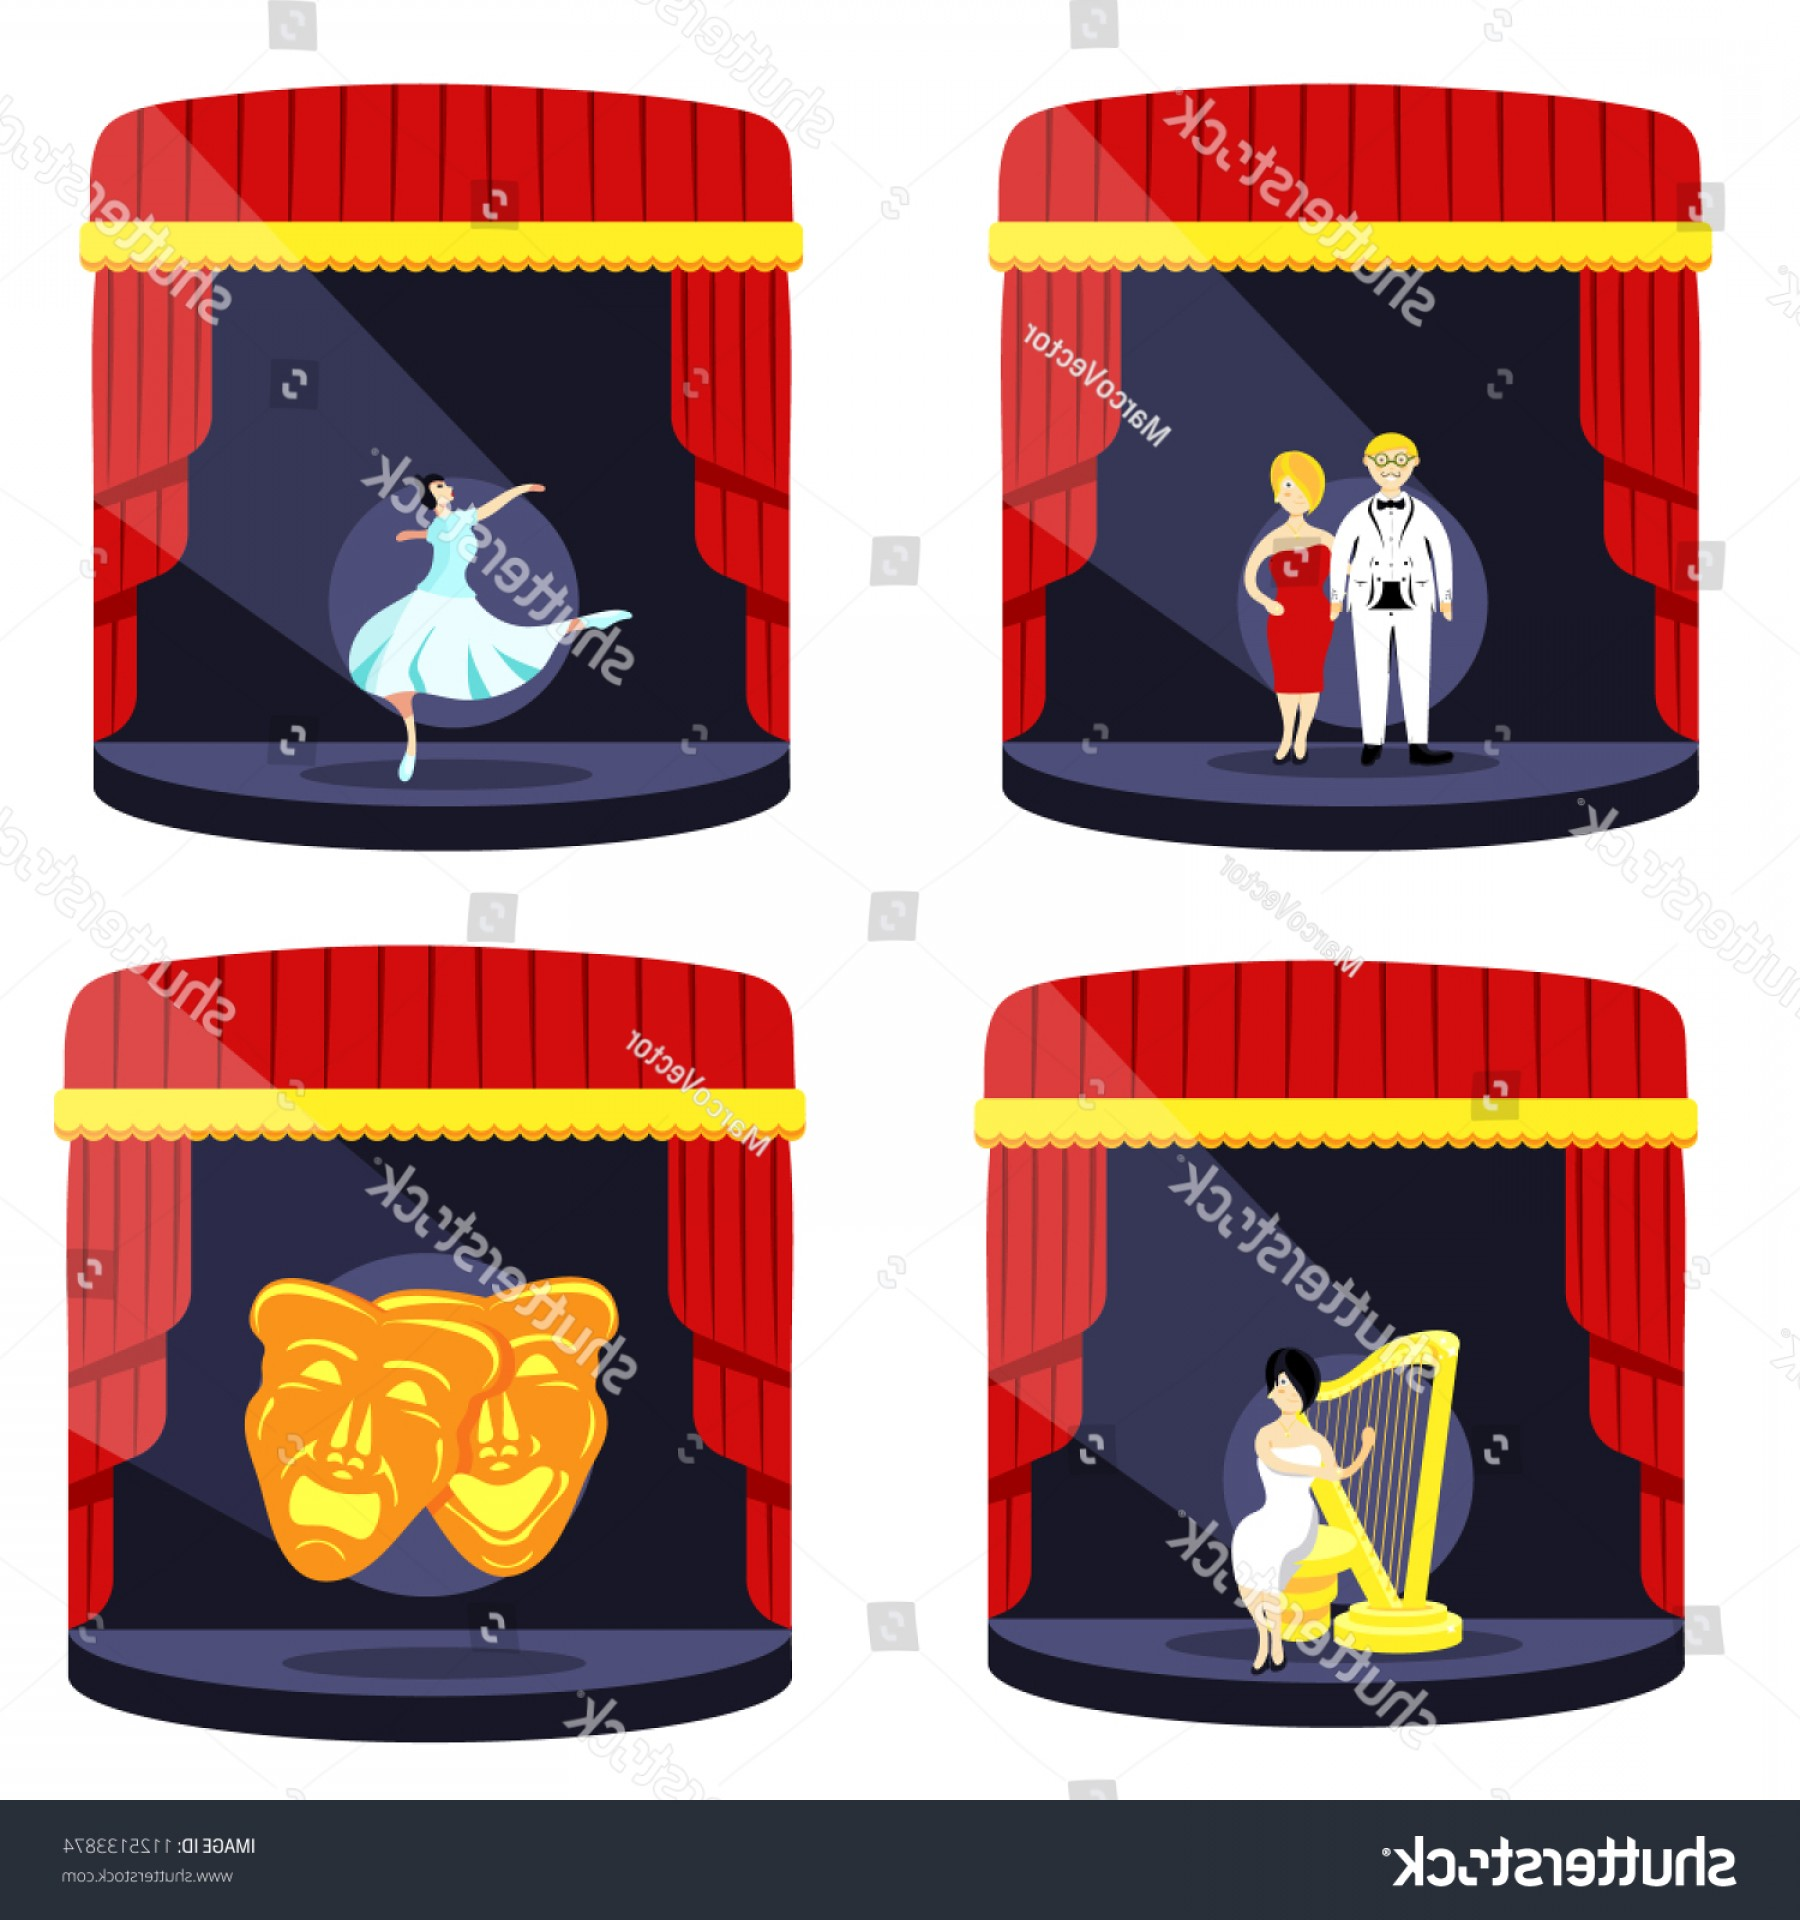 Belgium Theatre Vector Icons: Theater Nighttheater Comedy Masks Tragedies On